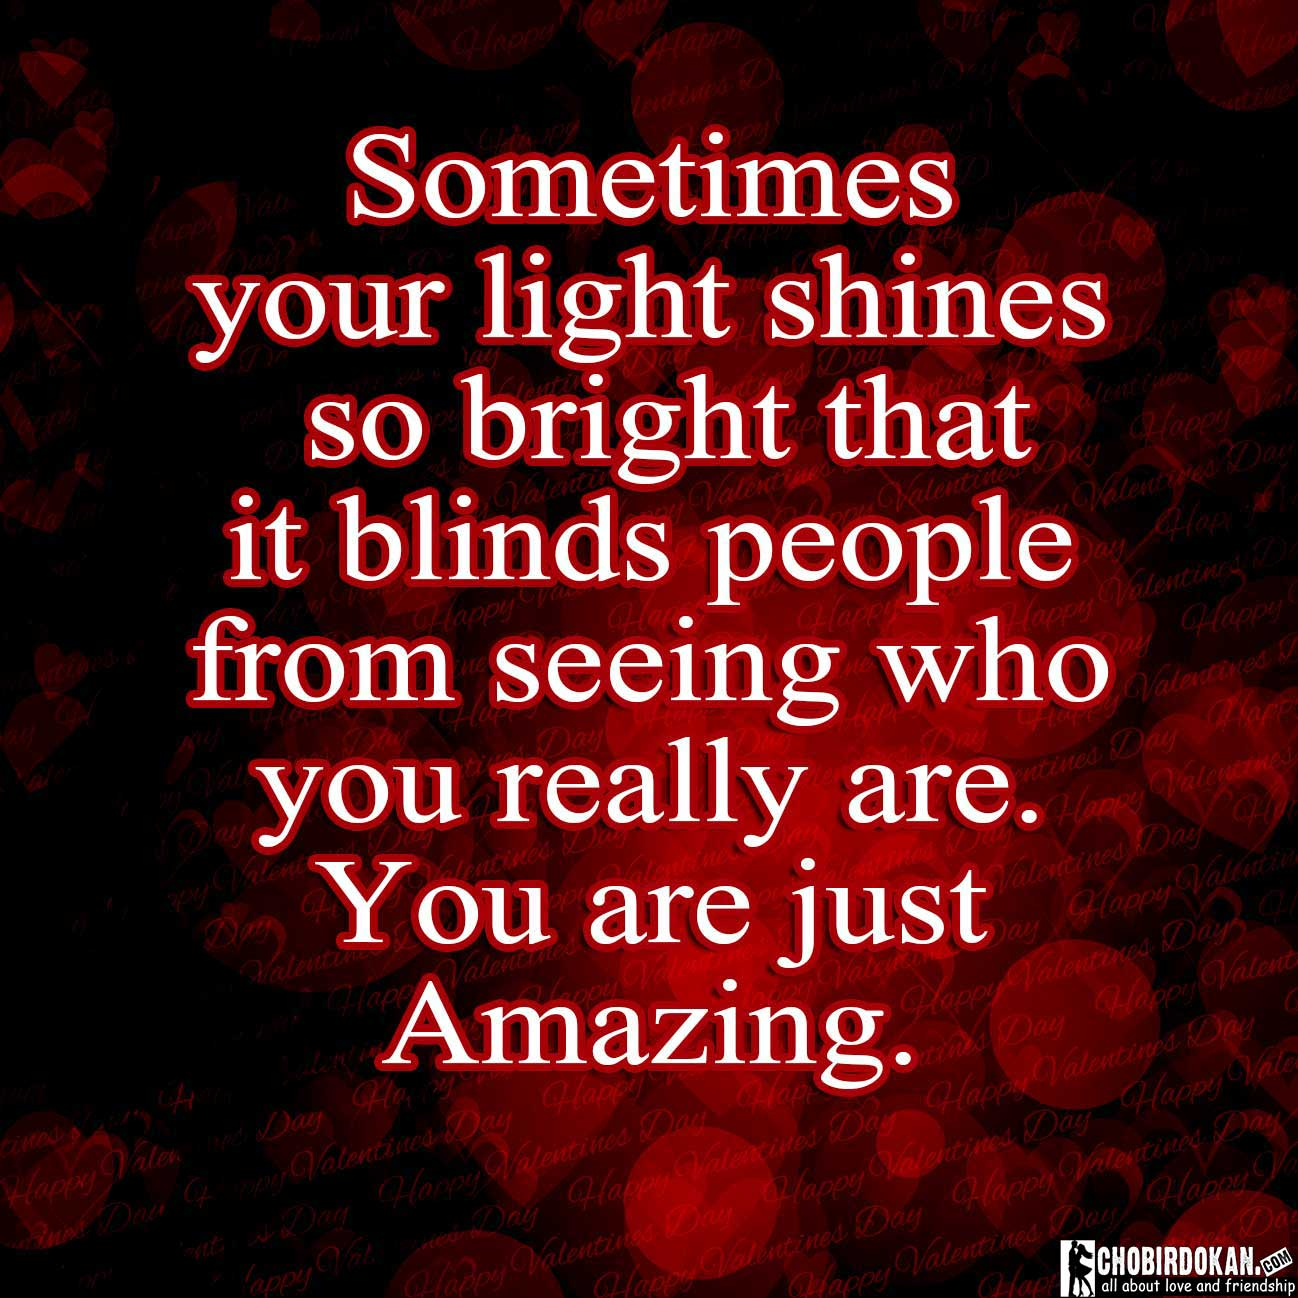 You Are Amazing Quotes For Him and Her With Images Chobir